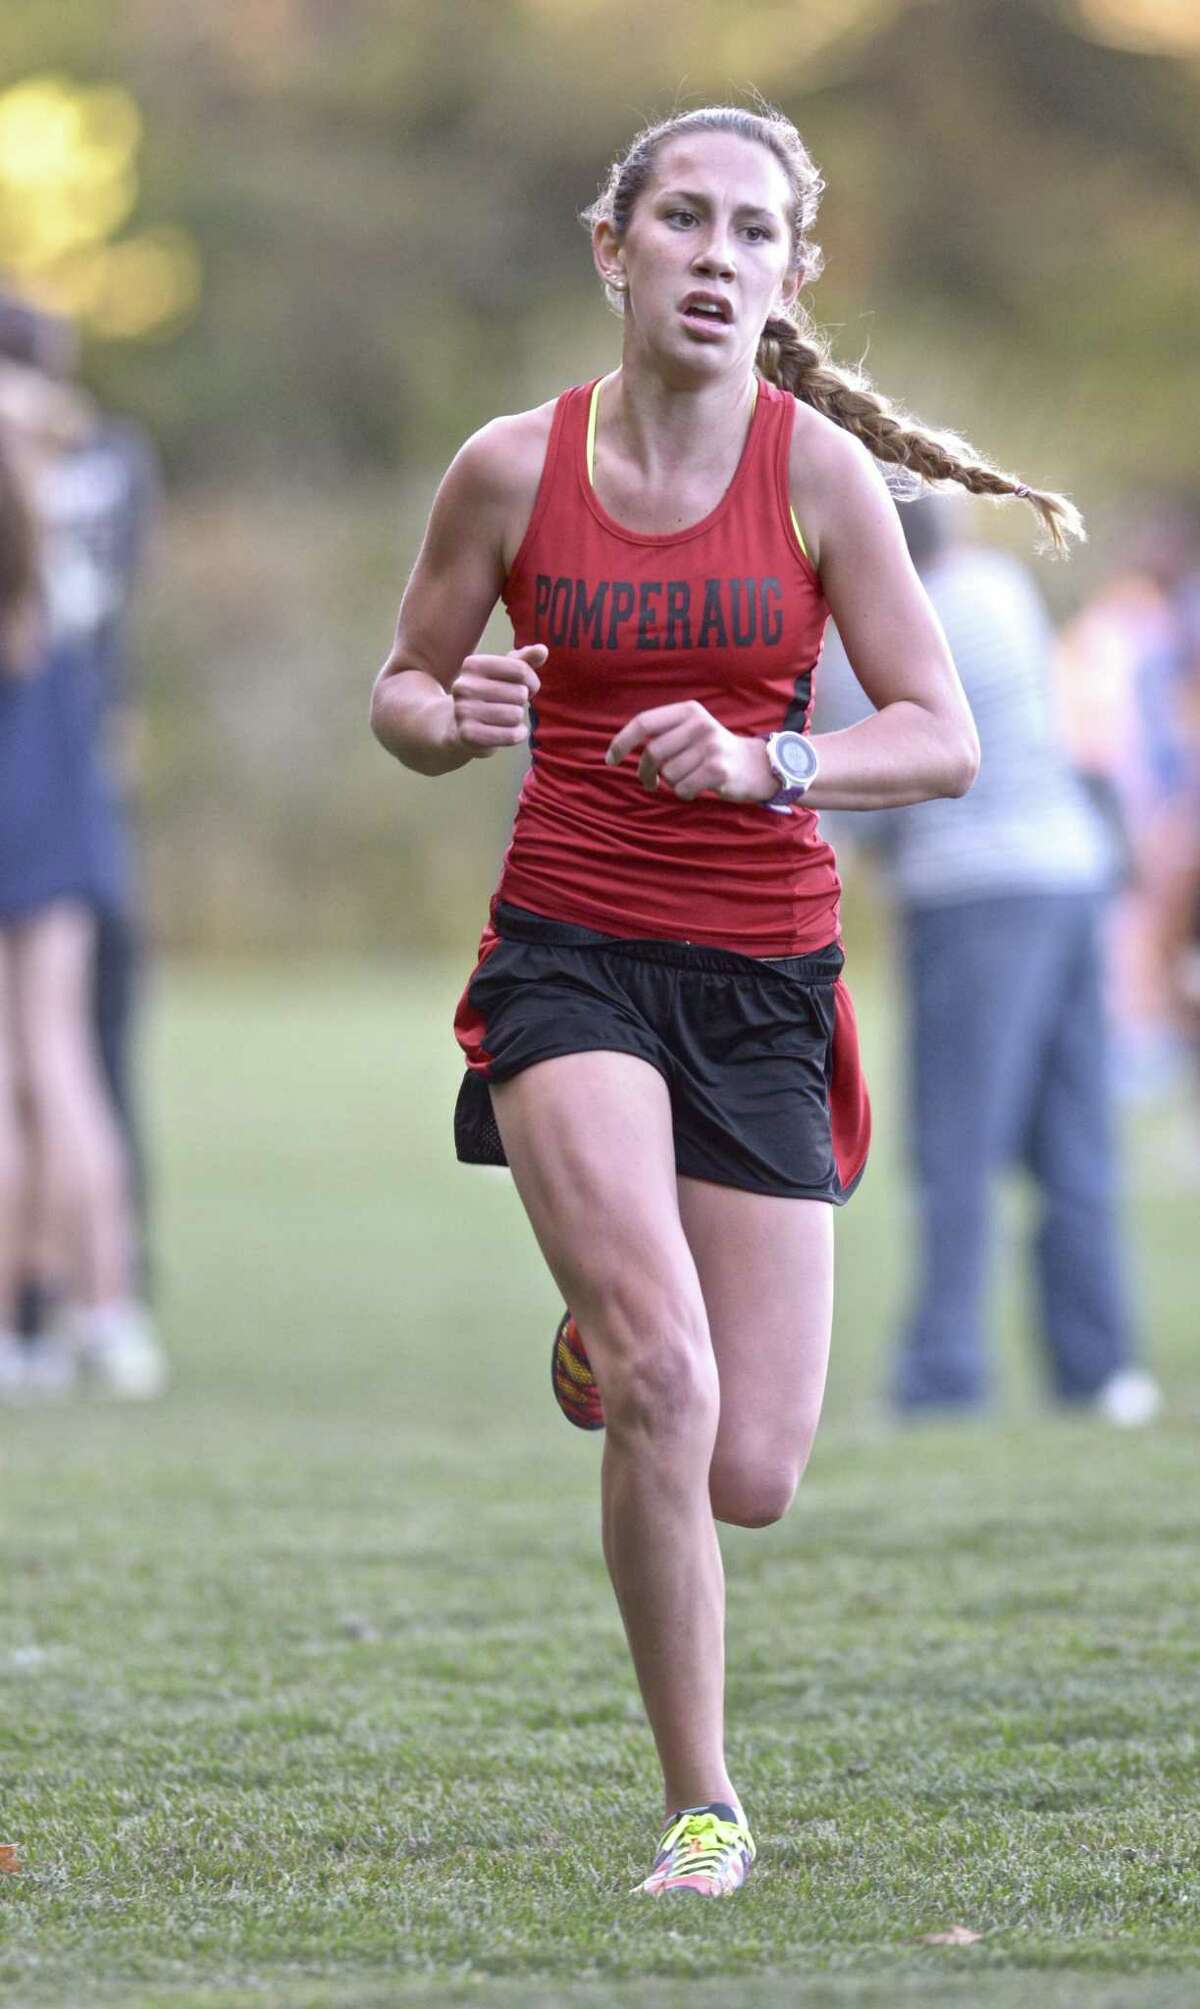 FILE PHOTO: Ivy Walker, from Pomperaug High School, finished first in the girls high School cross country meet between Brookfield, Pomperaug and Newtown high schools on Tuesday, October 6, 2015, at Reed Intermediate School, Newtown, Conn.